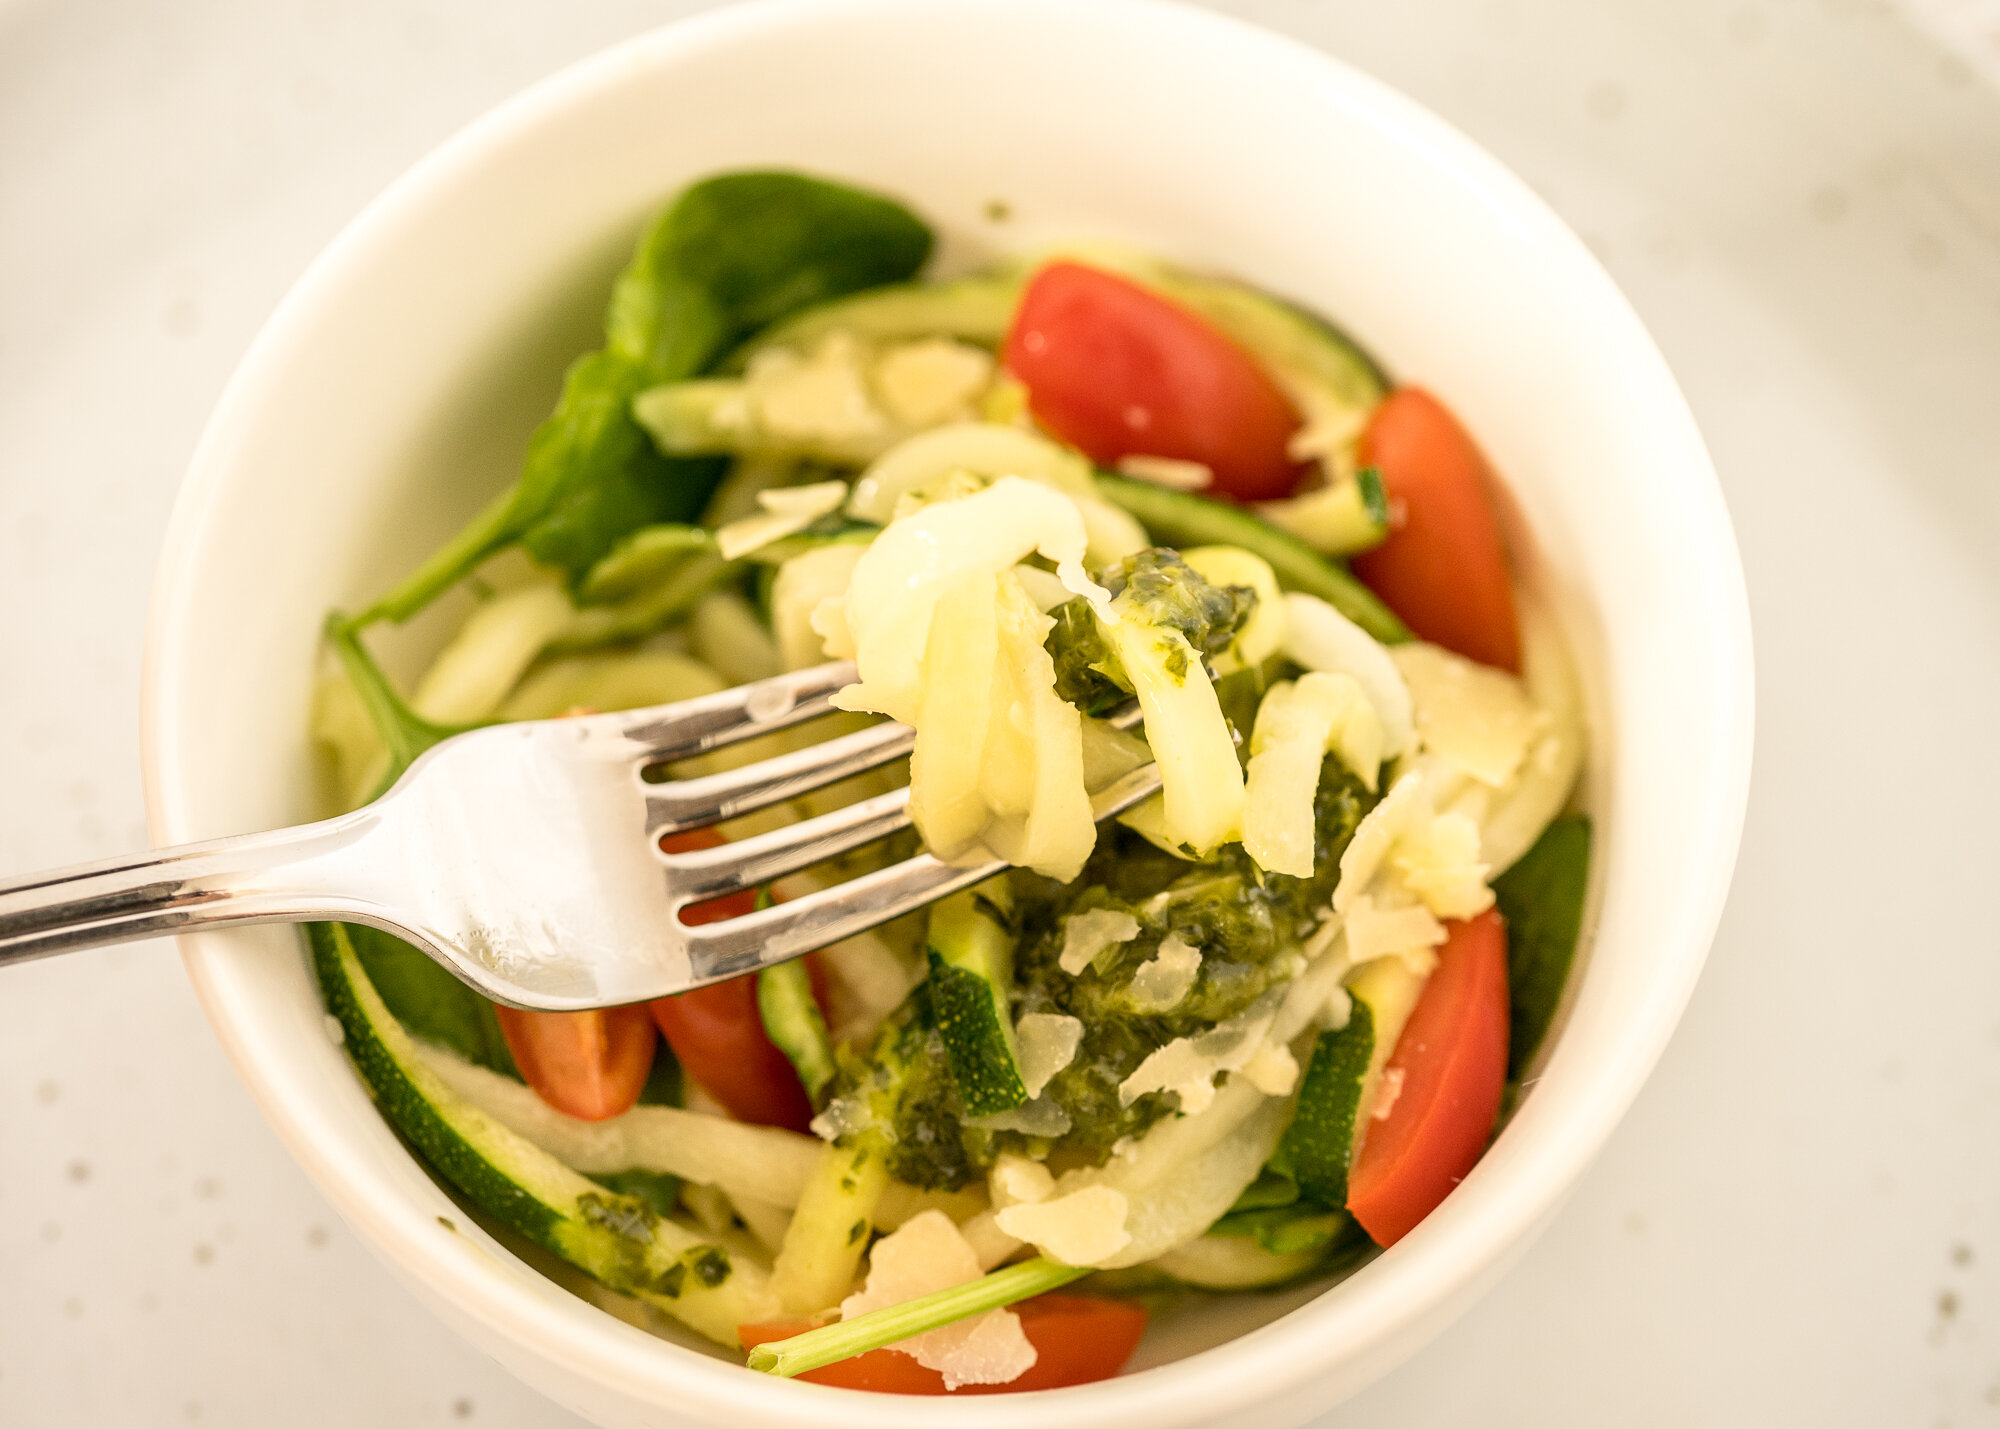 Basil Pesto with Zucchini Noodles